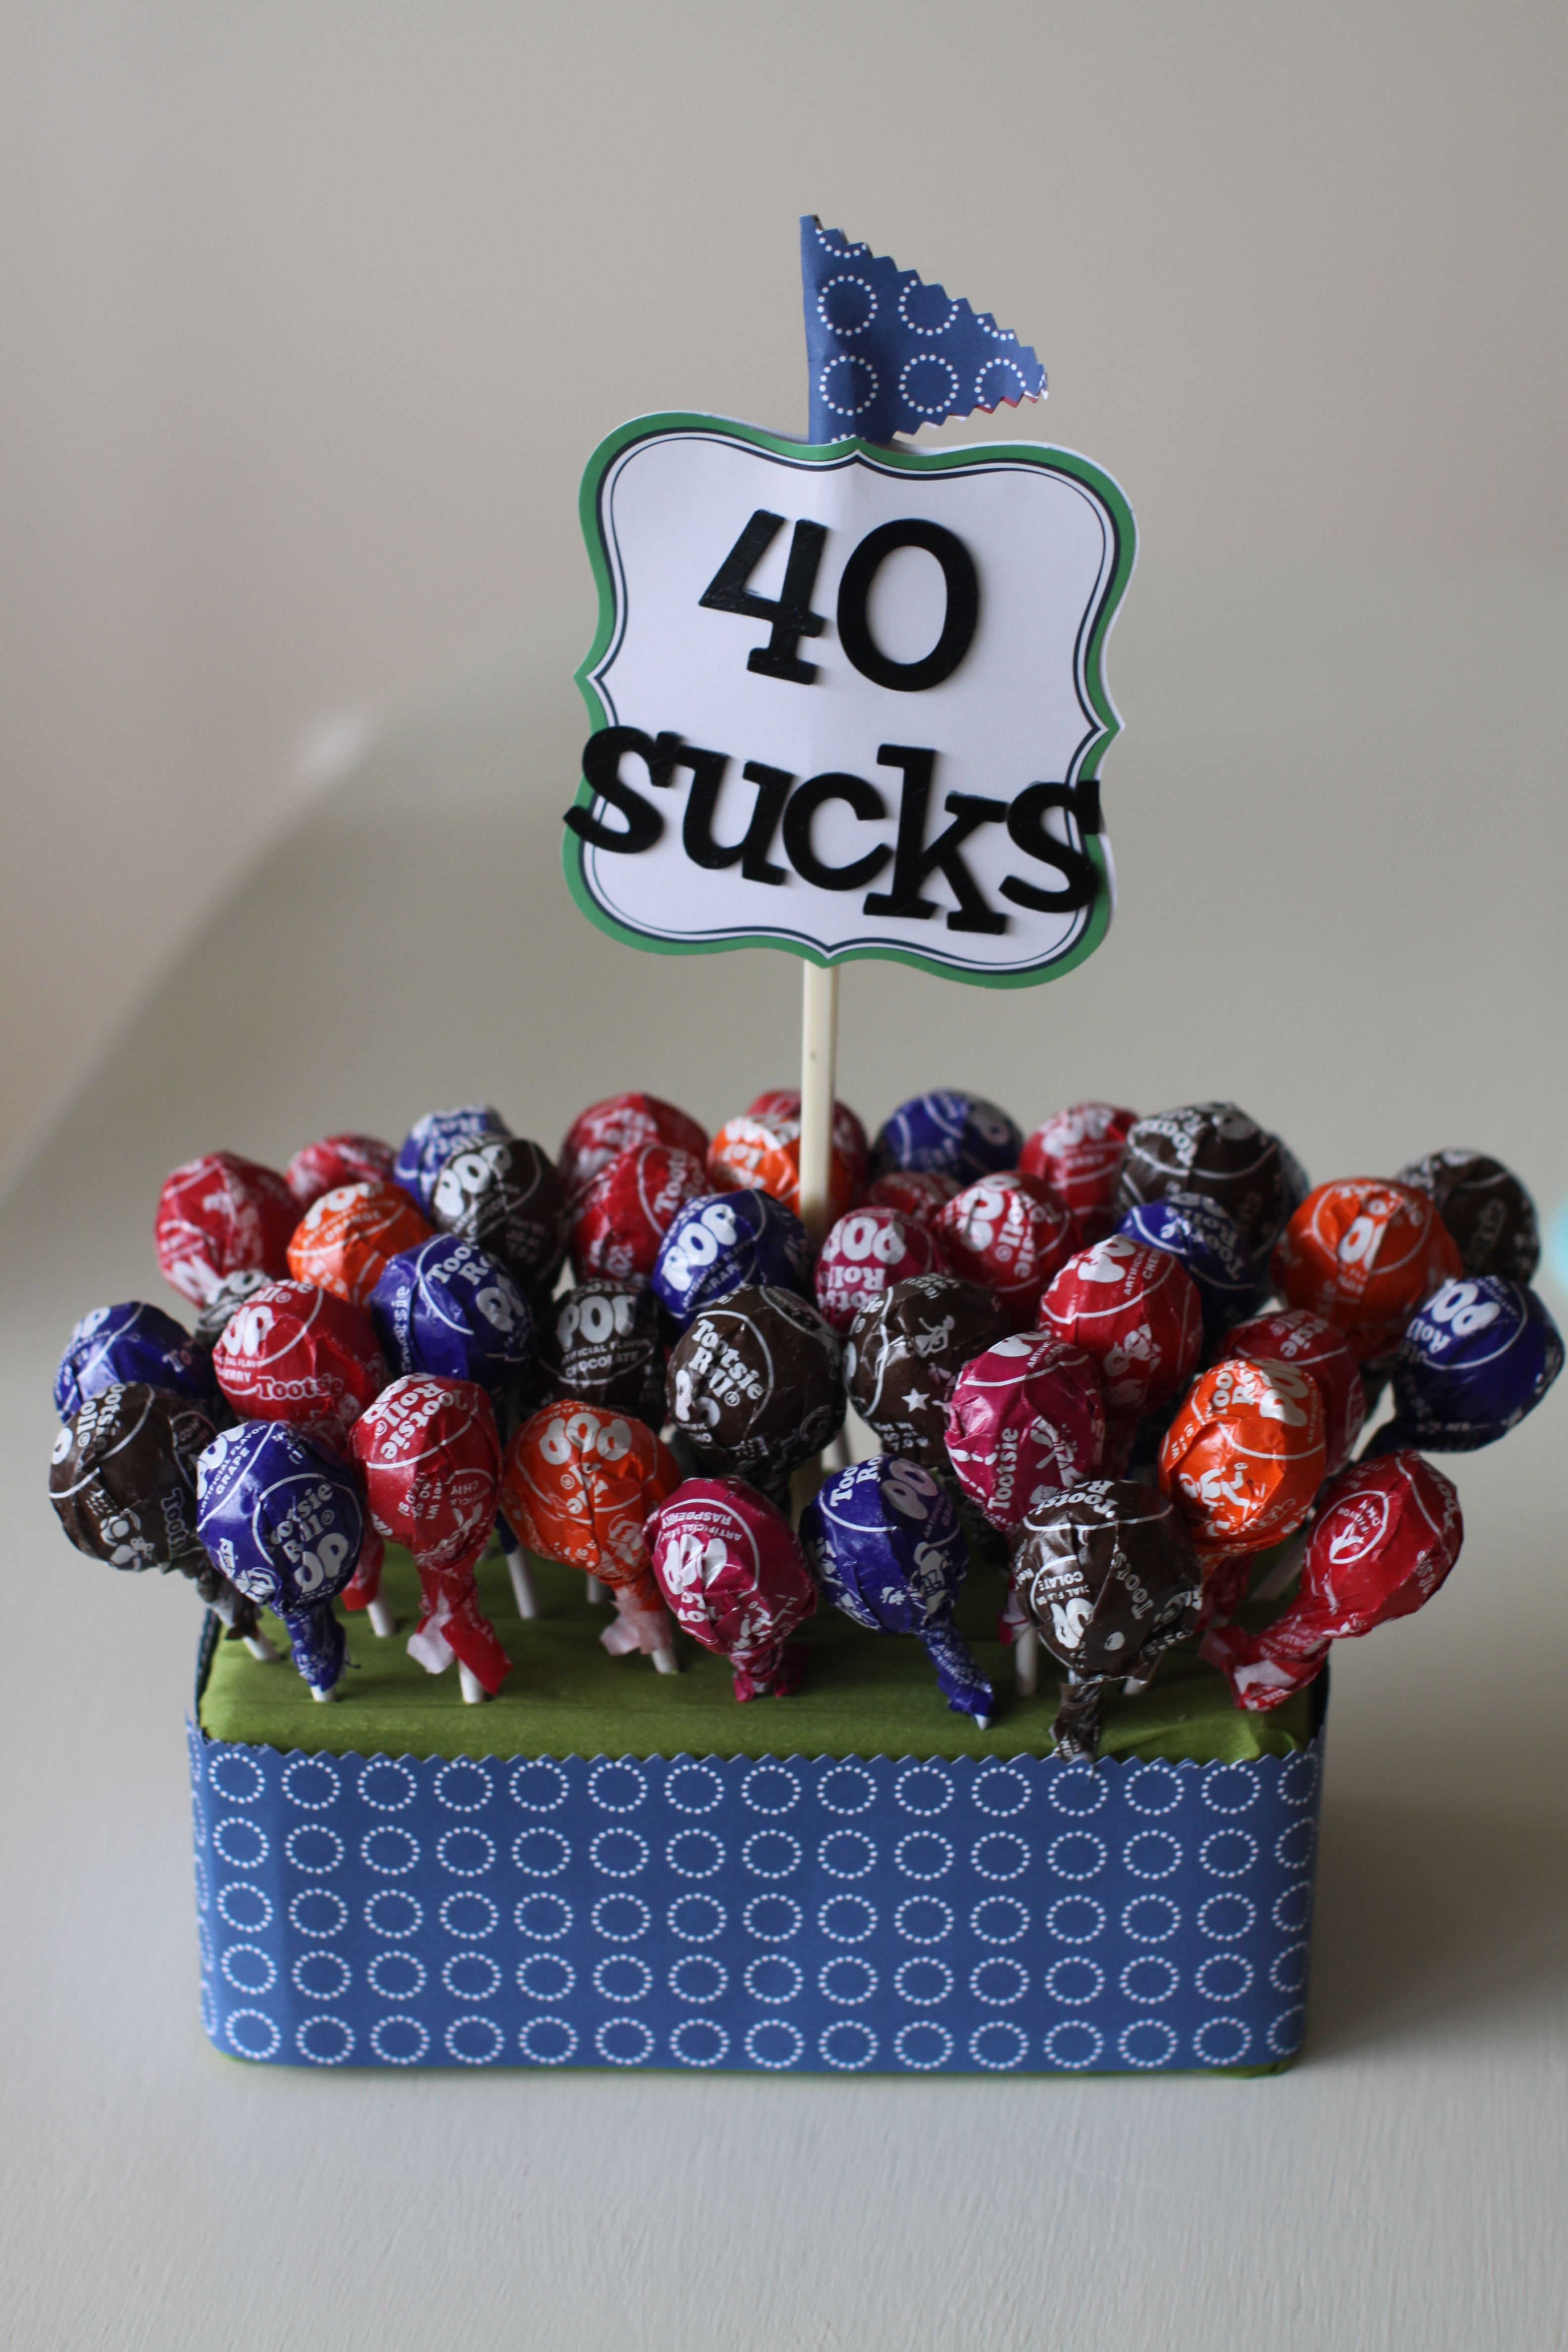 Cute Idea For 40th Birthday Gift Though 40 Does Not